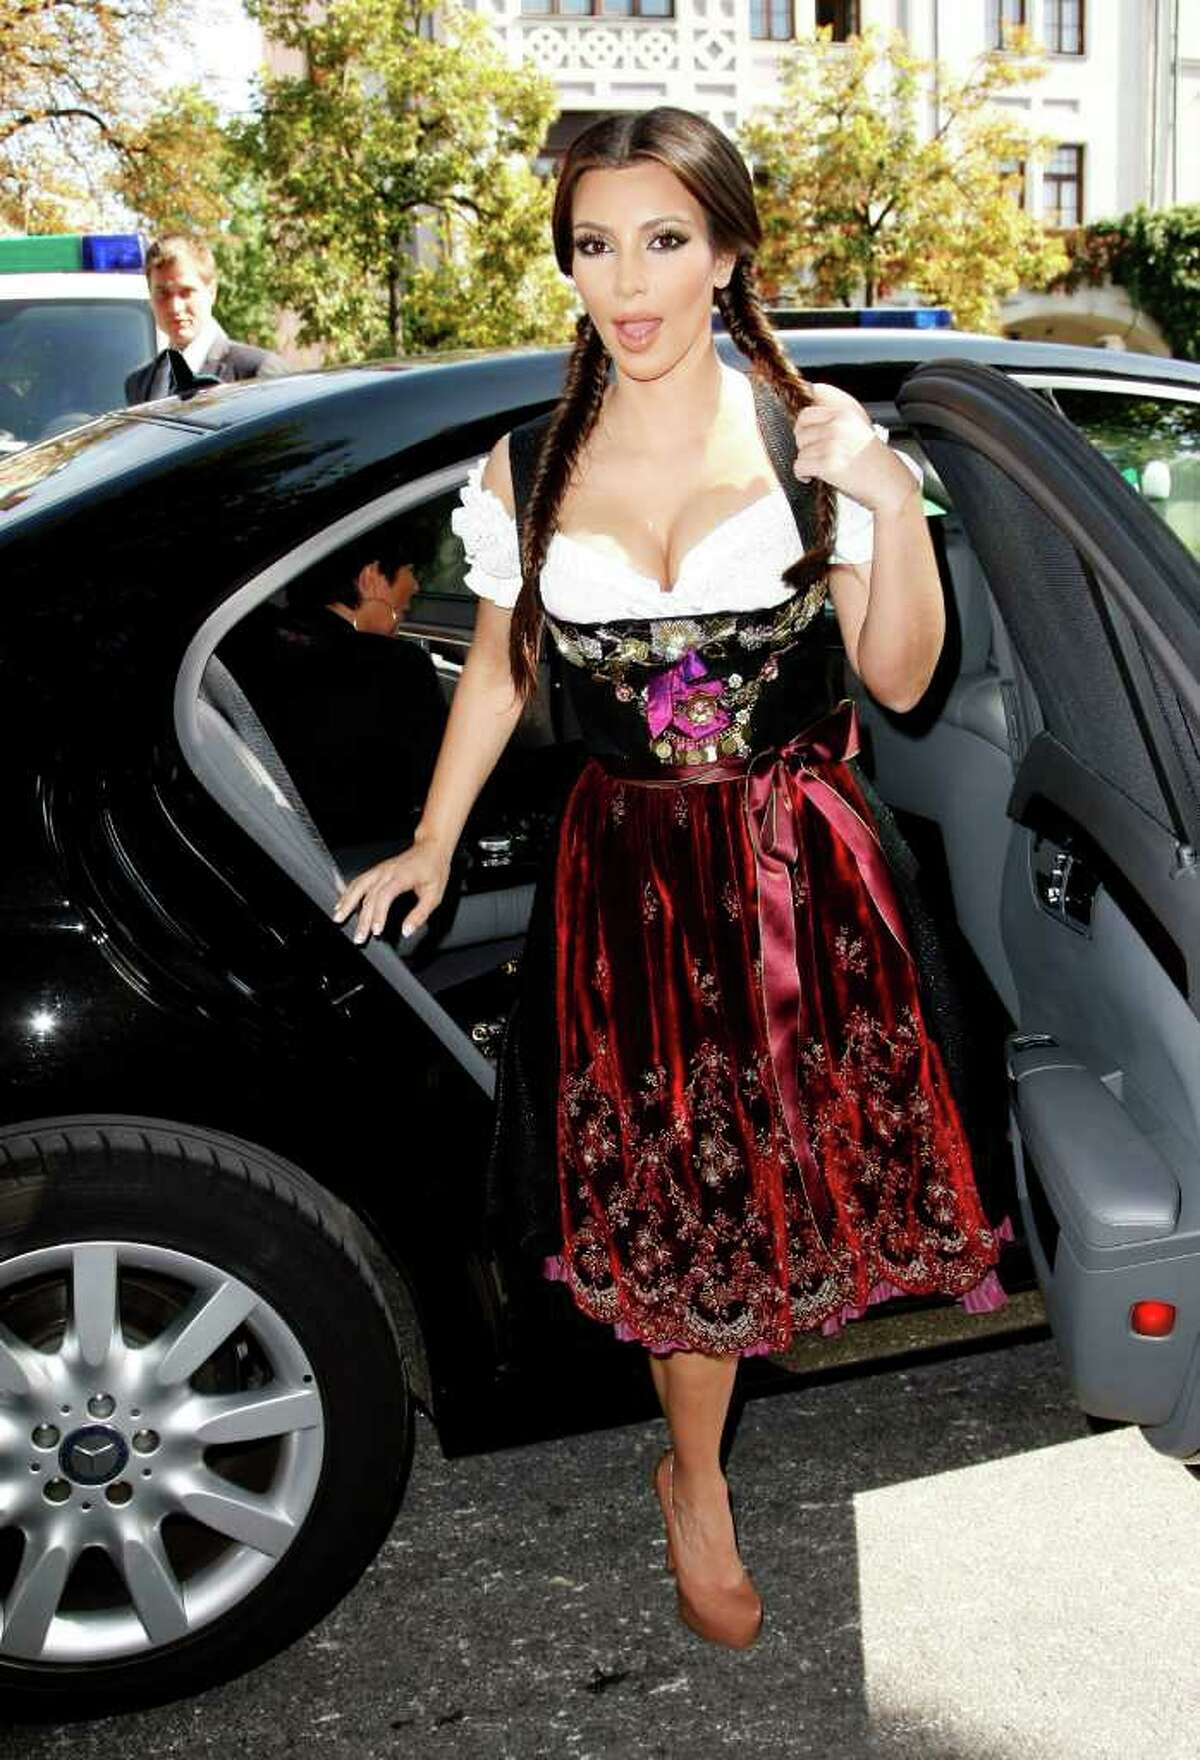 MUNICH, GERMANY - SEPTEMBER 22: Kim Kardashian (Dirndl/Dress: Lola Paltinger, Lollipop & Alpenrock) arrives for her visit of the Oktoberfest 2010 at Theresienwiese on September 22, 2010 in Munich, Germany. (Photo by Florian Seefried/Getty Images) *** Local Caption *** Kim Kardashian